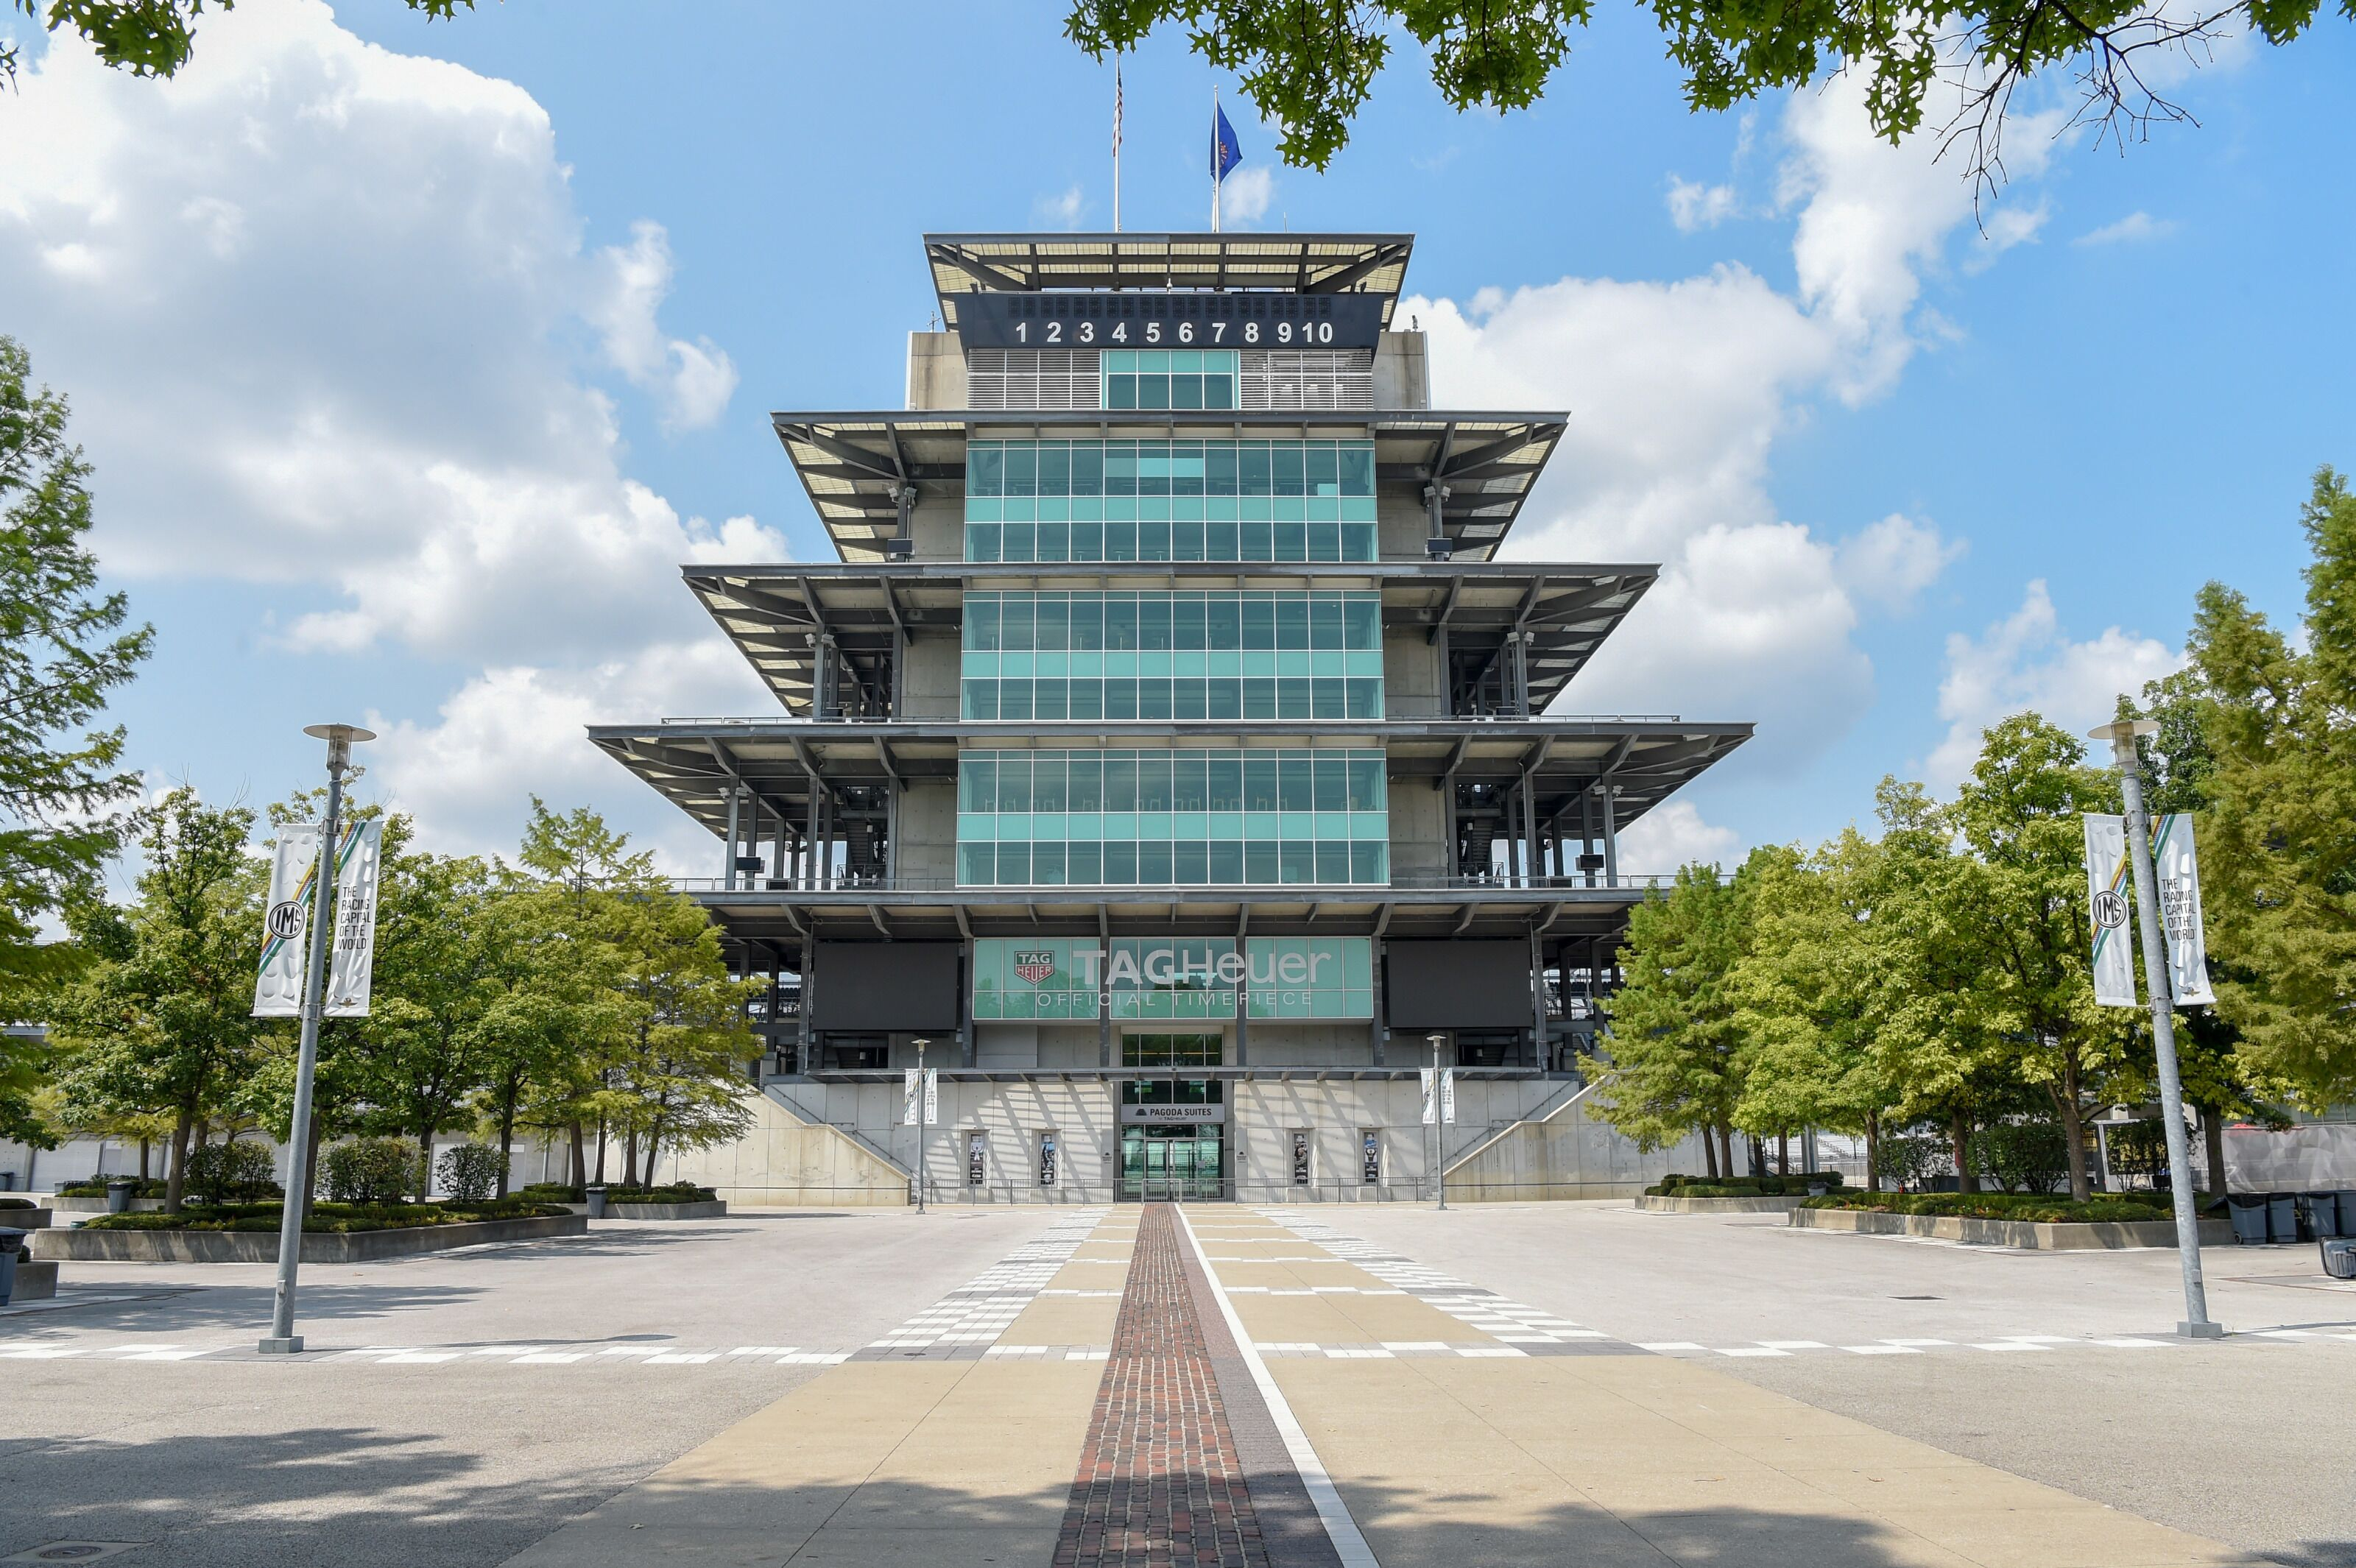 2019 Indianapolis 500 TV schedule: IndyCar start time, TV